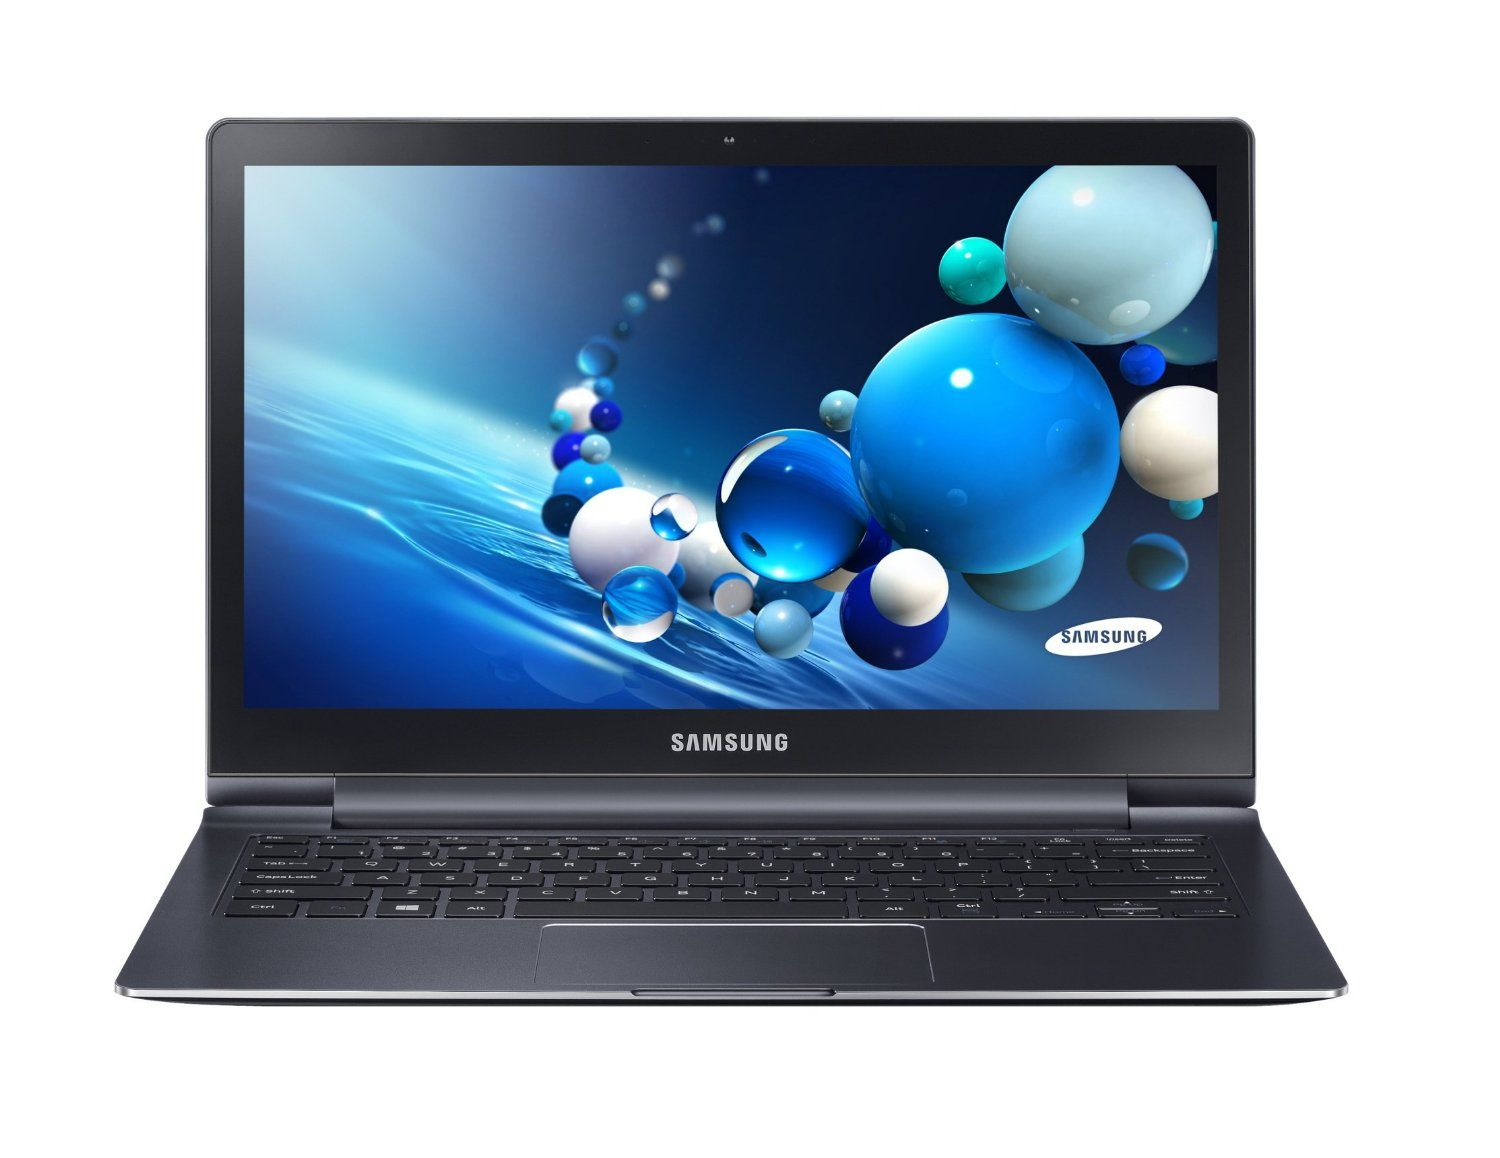 Samsung NP940X3G-K01US Touchscreen Laptop  http://sierracomponent.com/product/samsung-np940x3g-k01us-touchscreen-laptop/  #Samsung   #Chromebook     #Laptop   #windows8   #Tablet   #Ultrabook